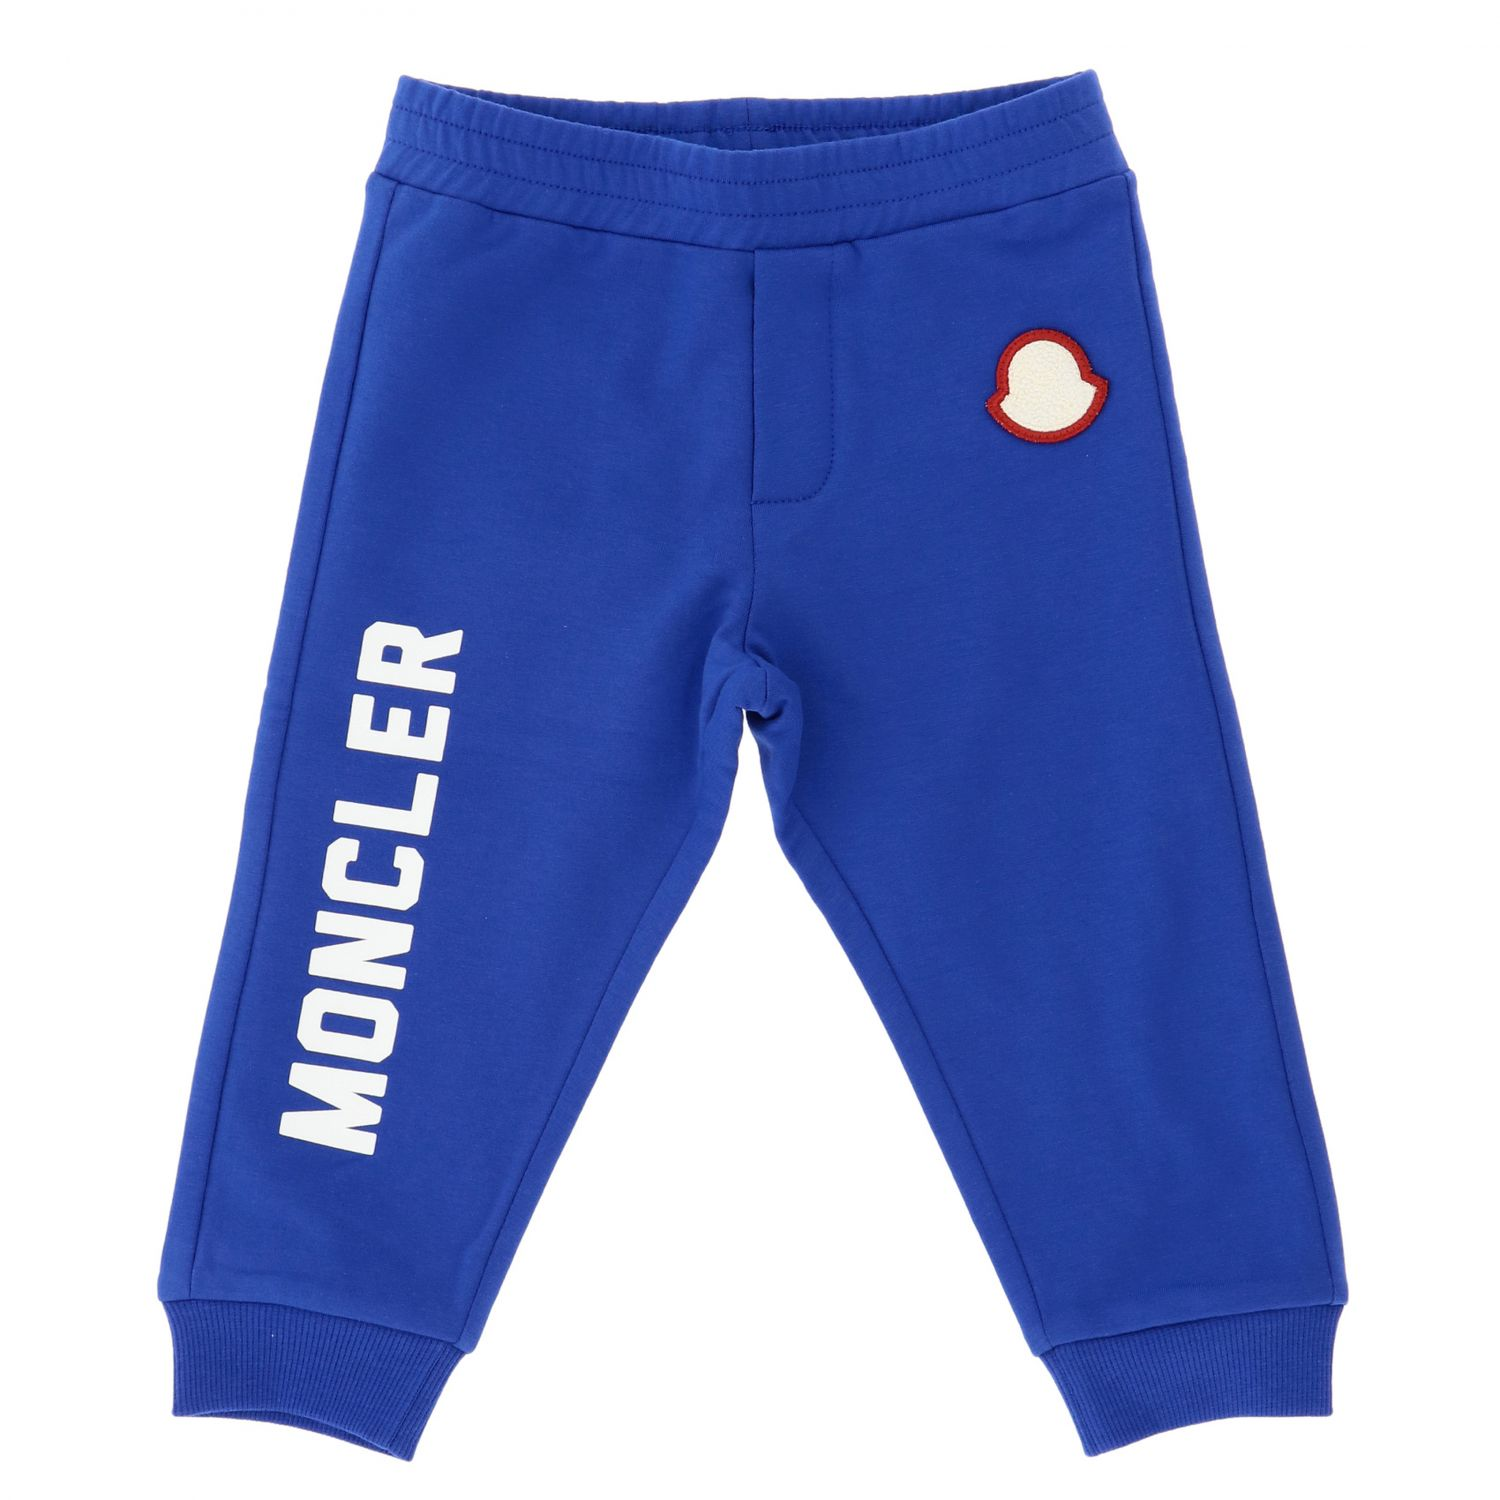 Pantalon enfant Moncler bleu royal 1